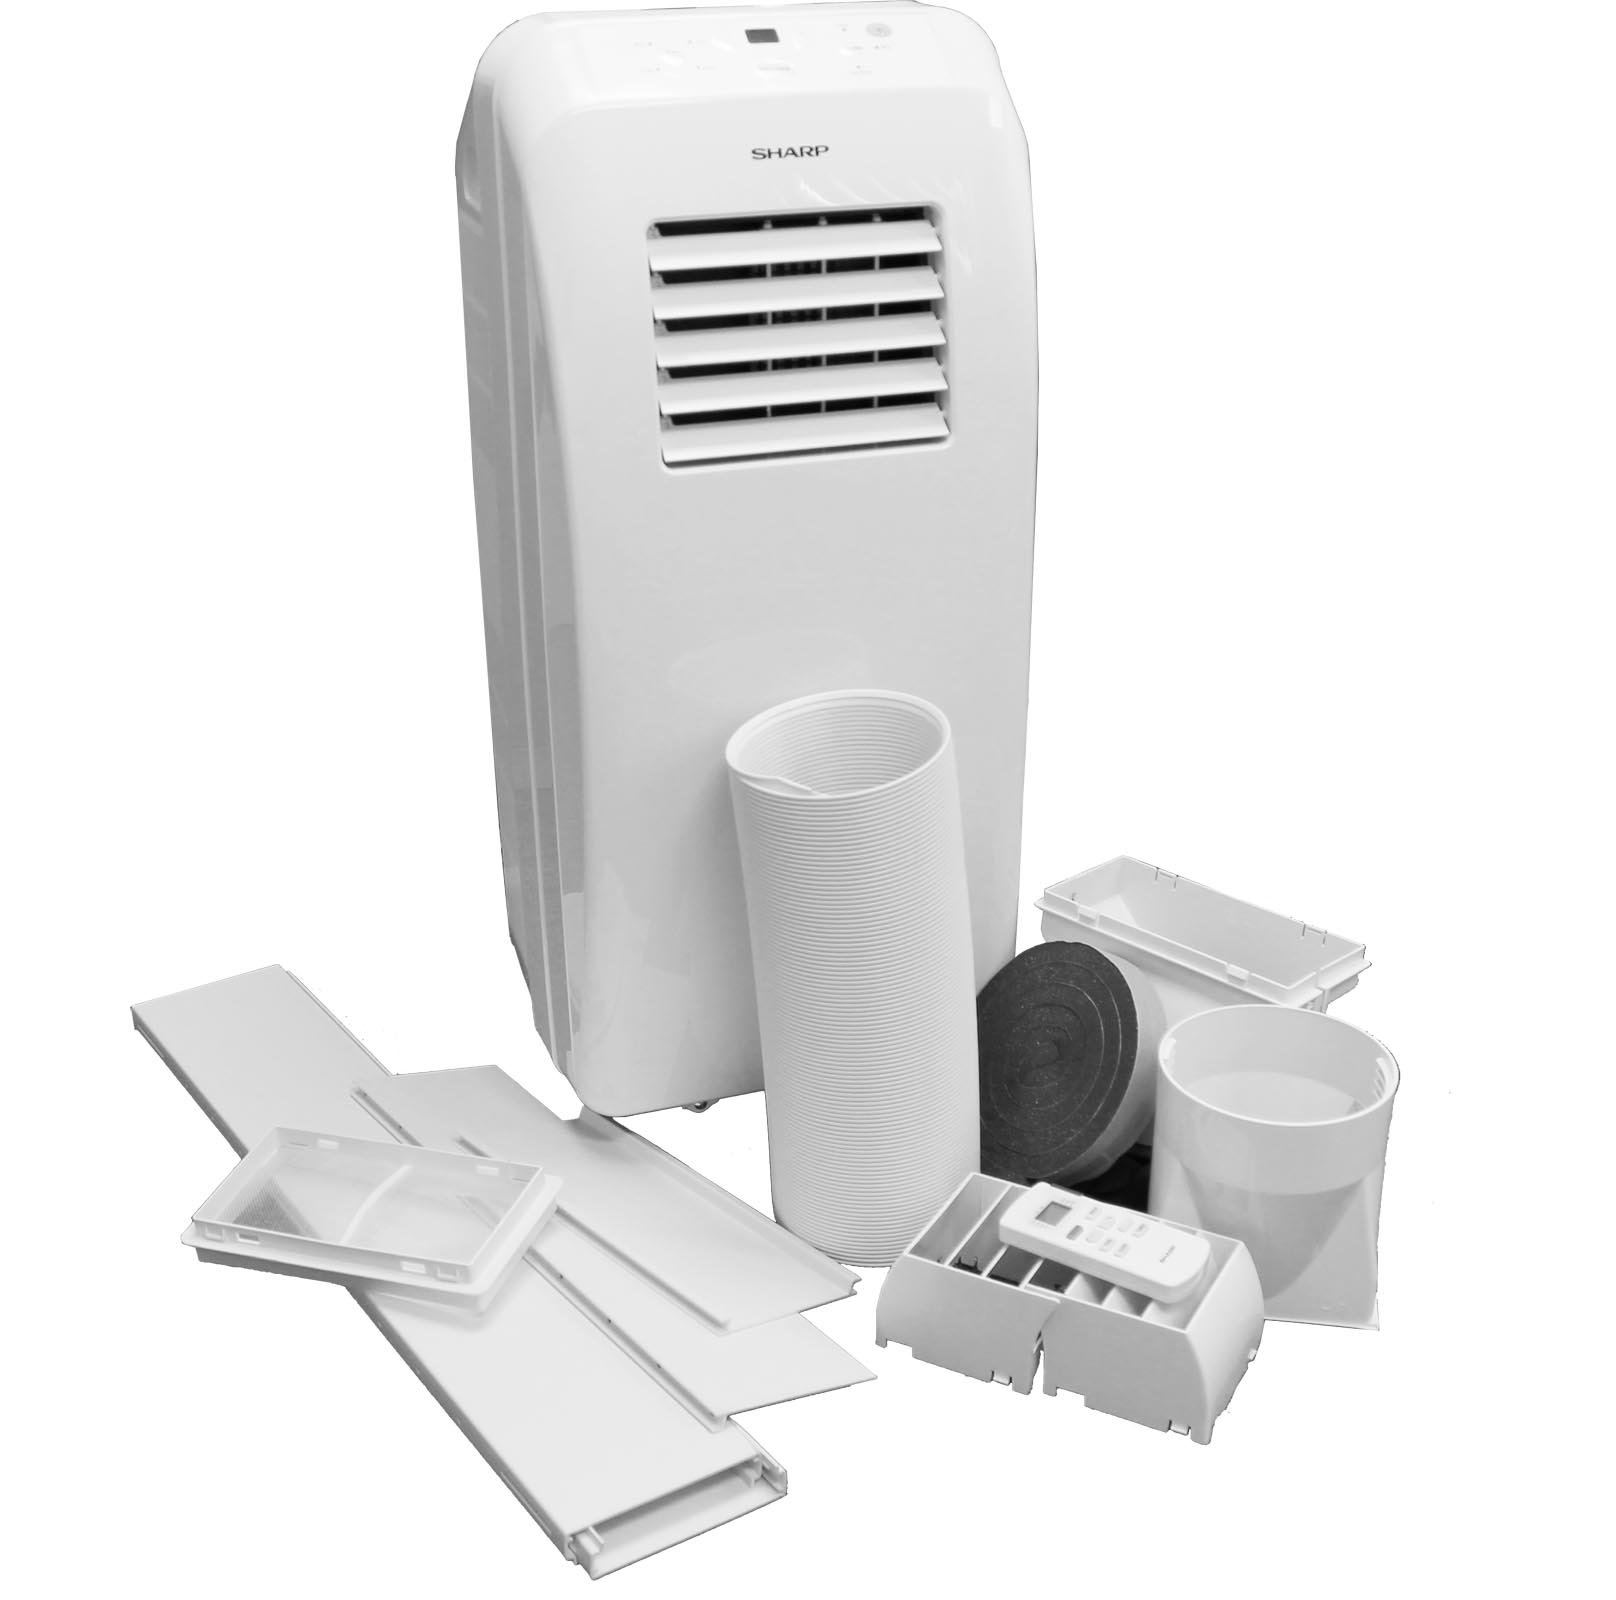 Sharp CV10CTX White Portable Electric Air Conditioner (Refurbished) | 10,000 BTU